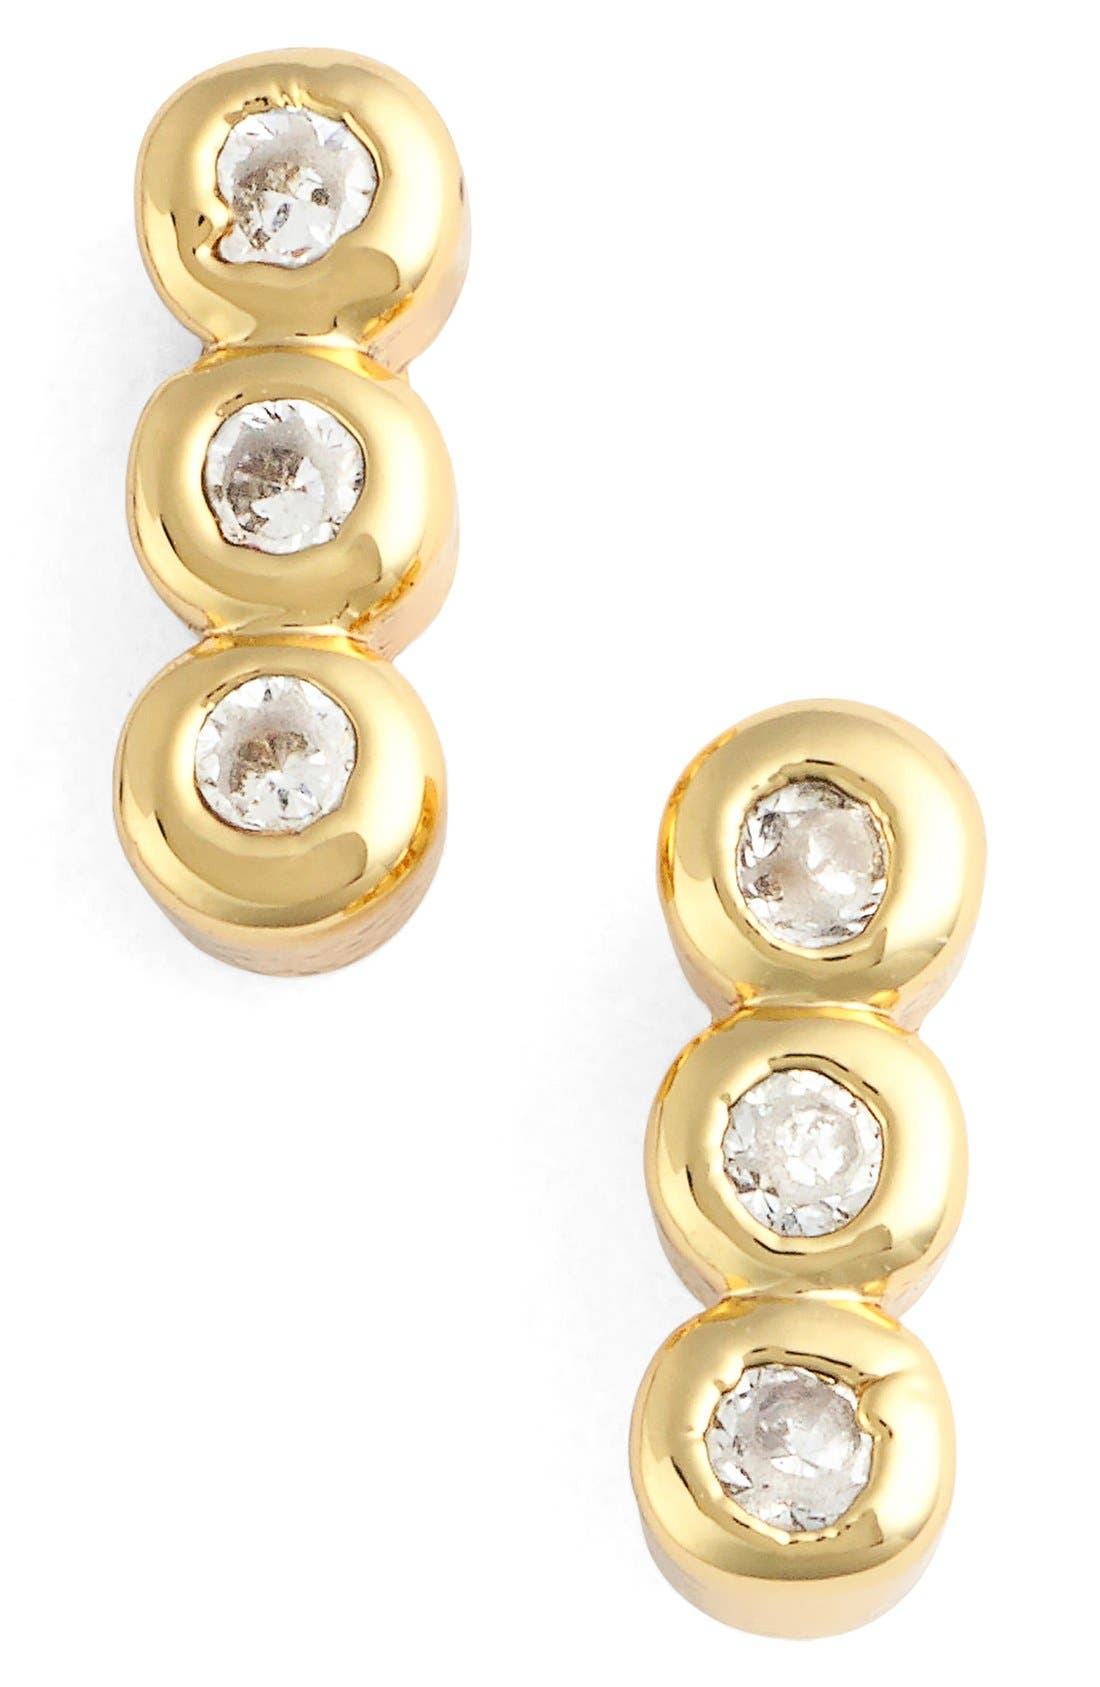 Triple Bezel Stud Earrings,                         Main,                         color, 710